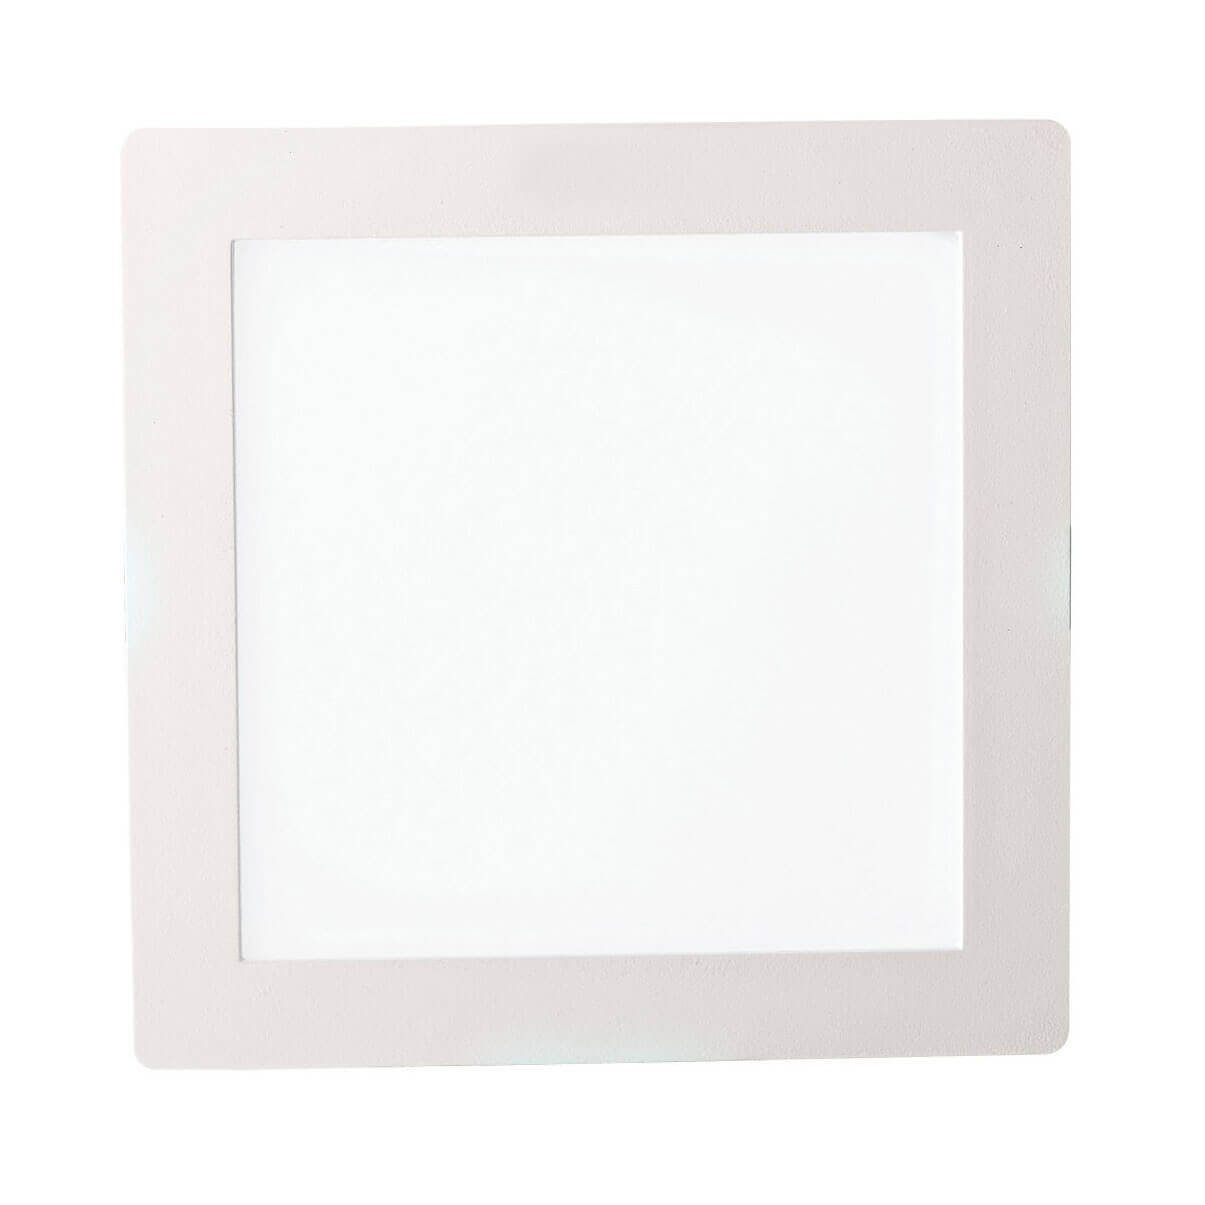 Светильник Ideal Lux Groove 20W Square 3000K